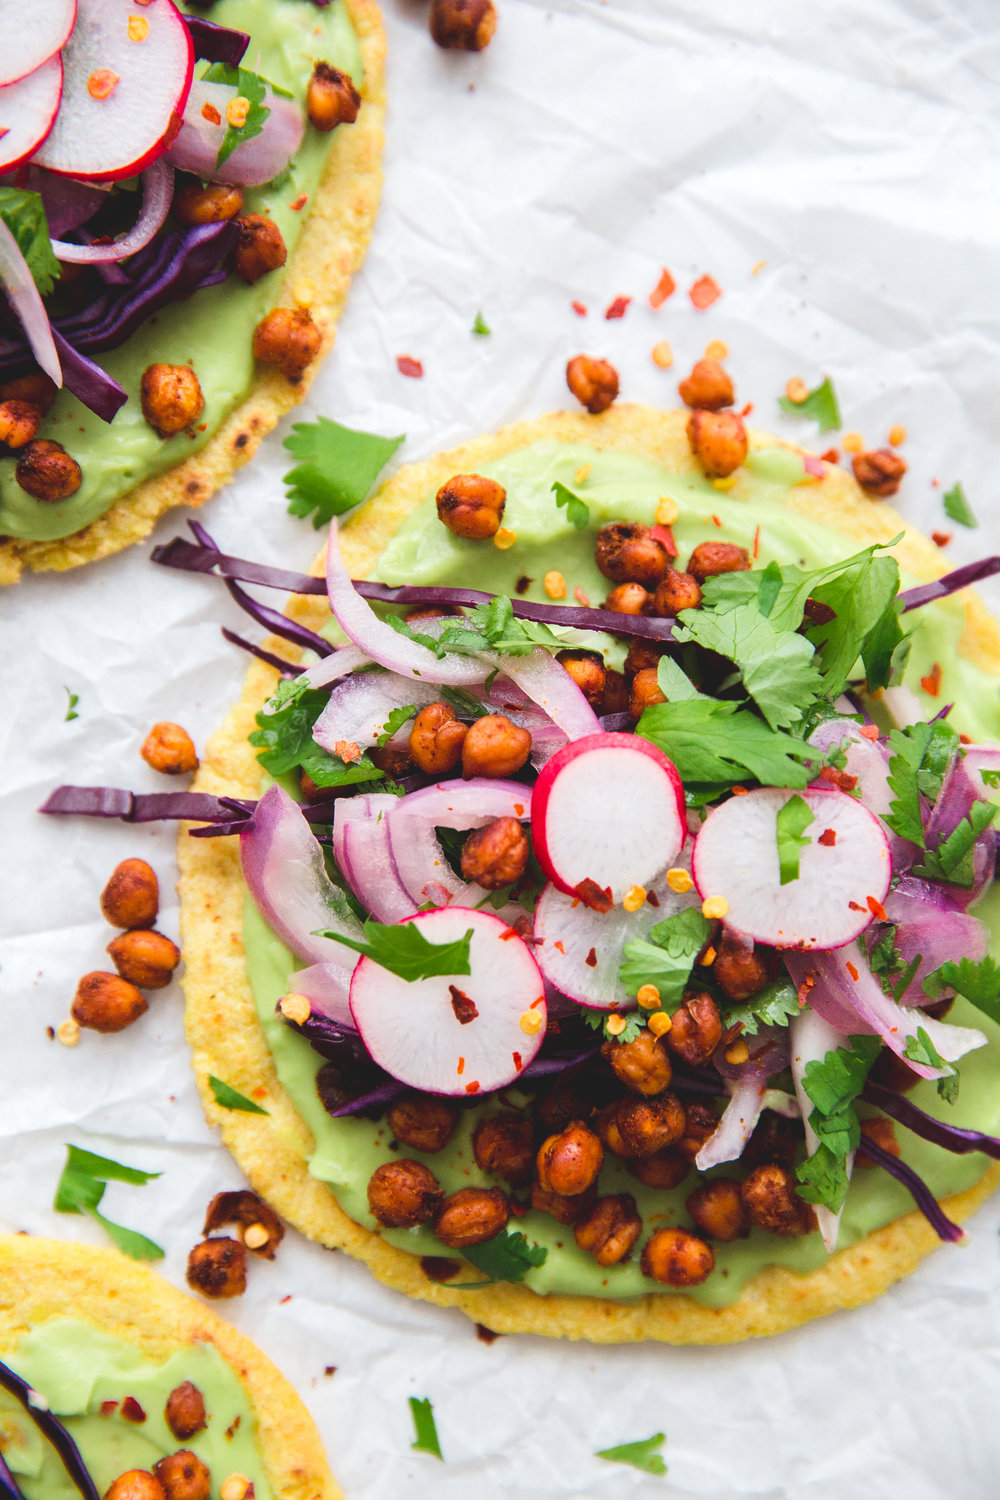 Roasted Chickpea Tacos with Avocado Cream and Salsa Criolla, (Edible Ottawa), recipe and photo by Kylah Dobson